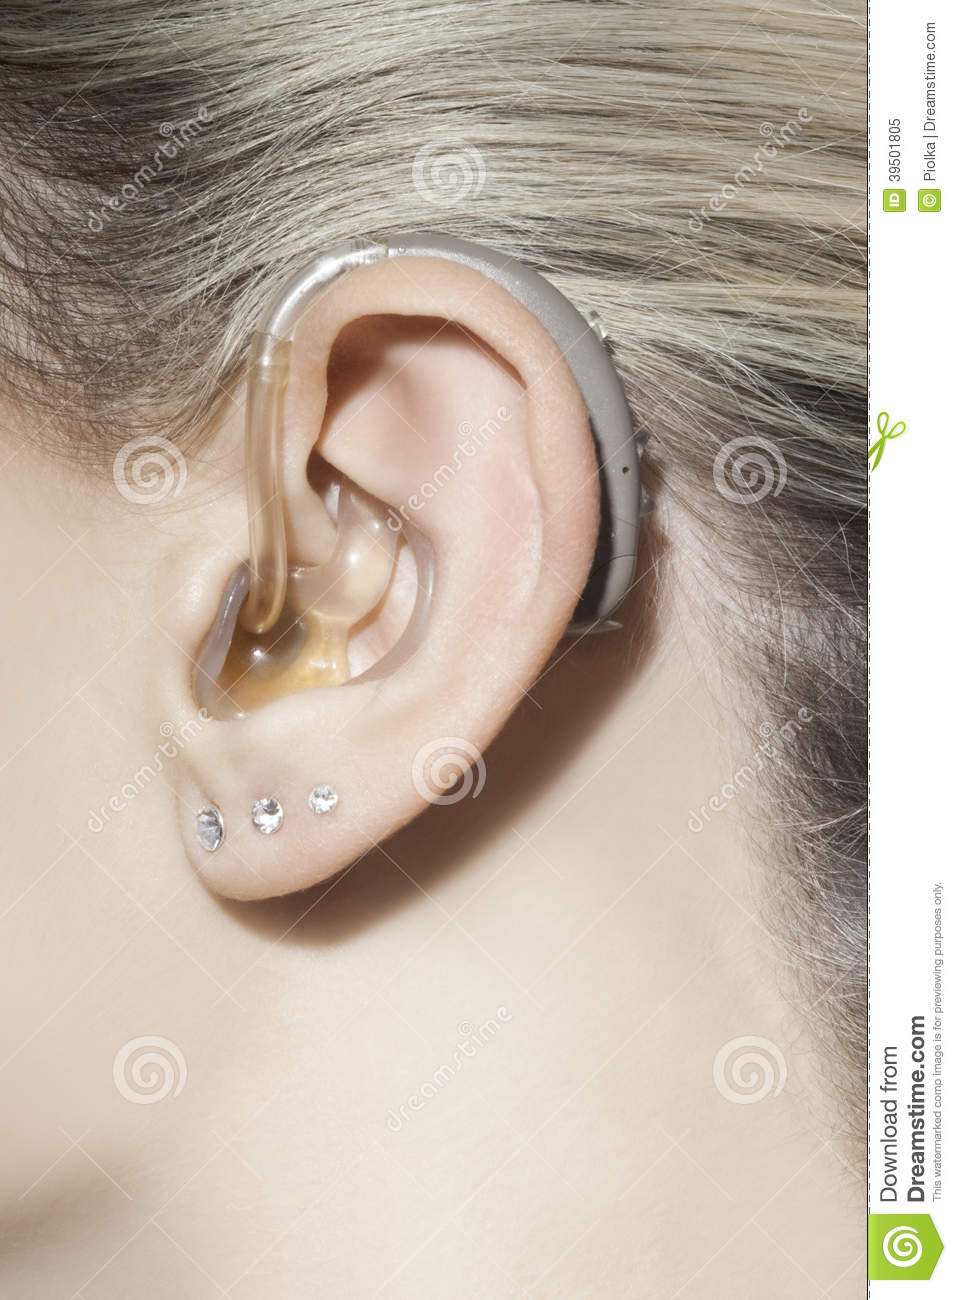 Women ear with hearing aid